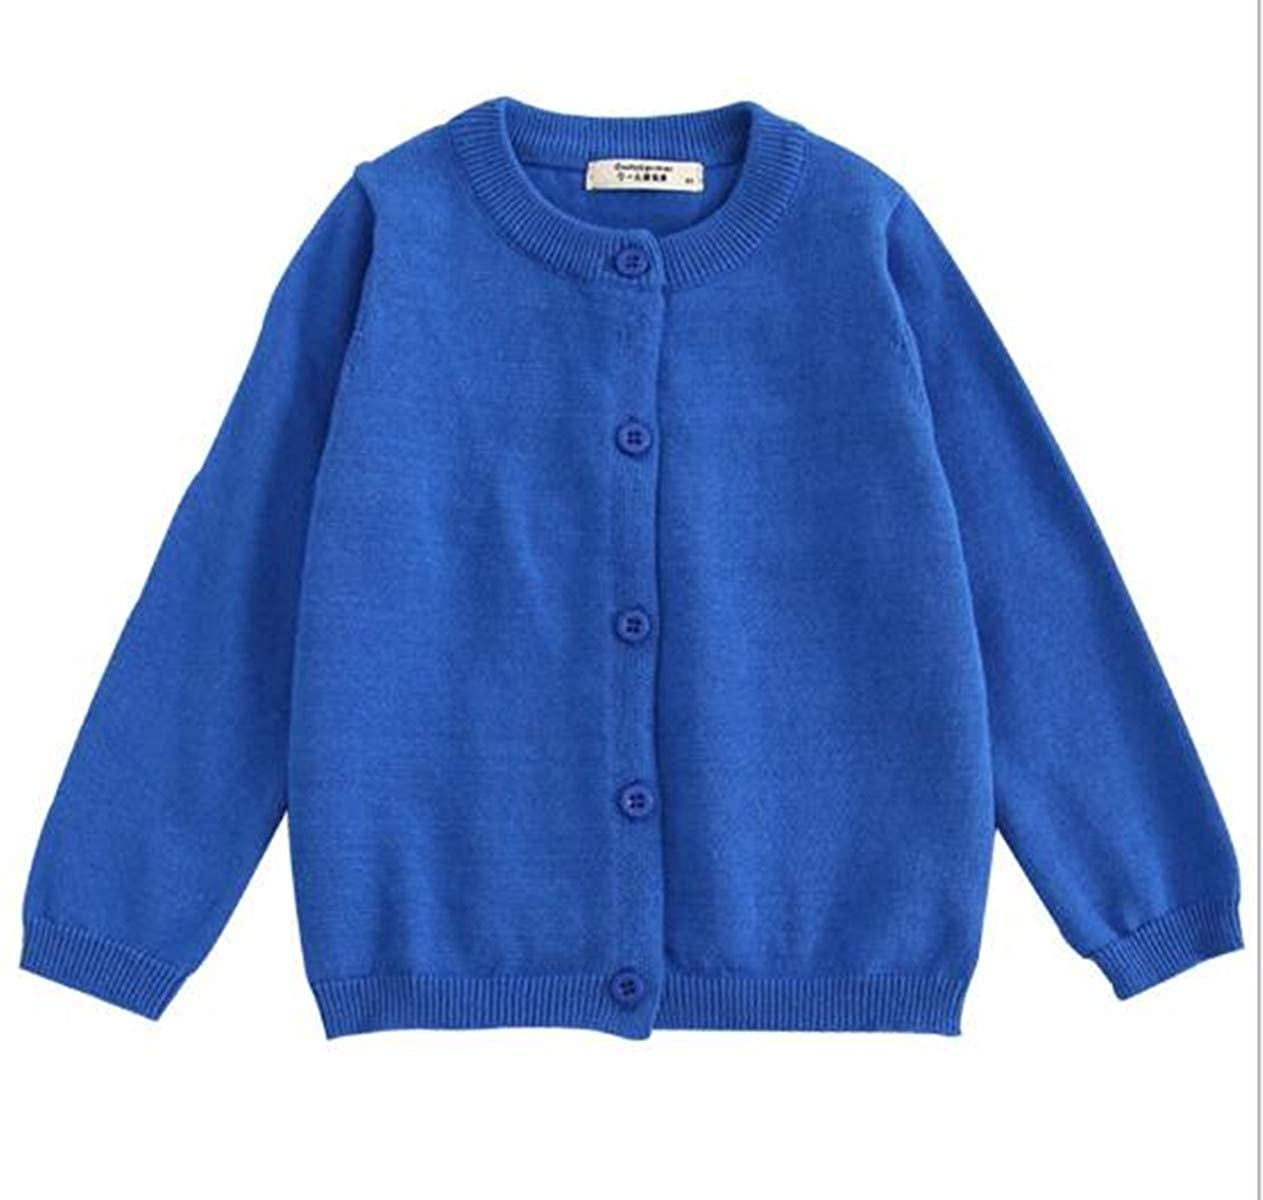 FEESON 100/% Cotton Knit Crew Neck Solid Button Down Cardigan Sweater for Children